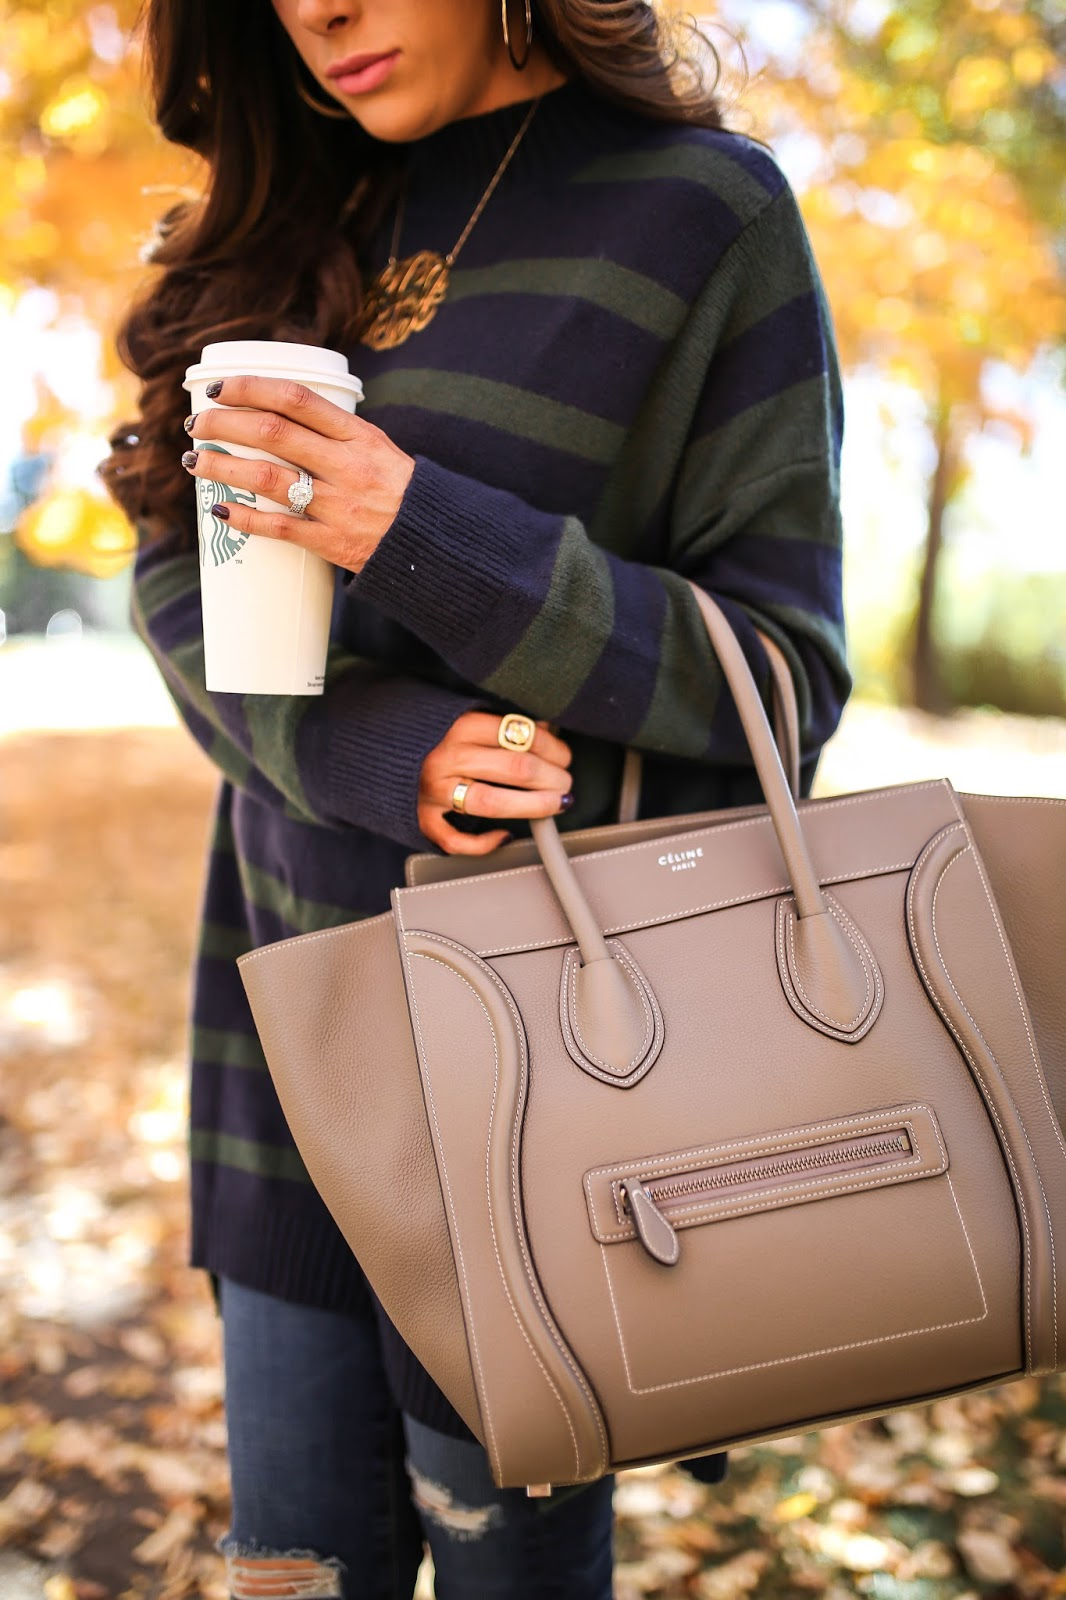 Emily Gemma, The sweetest thing blog, BP striped oversized sweater nordstrom, AG ripped skinny jeans, celine mini luggage in taupe. celine sunglasses catherine in tortoise, Blake sam edelman booties, david yurman gold albion ring pink stone, oversized gold monogram necklace, love always monogram necklace, Nordstrom skinny jeans with rips, nordstrom fall sweaters, nordstrom brown booties, best brown booties for fall 2016, cutest brown booties for fall, how to style brown booties for fall, pinterest fall fashion 2016, pinterest fall outfits, pinterest fall OOTDs, popular travel bloggers, travel bloggers in Denver, emilyanngemma, pinterest fall fashion, fall outfit ideas, fall outfit inspiration with booties pinterest